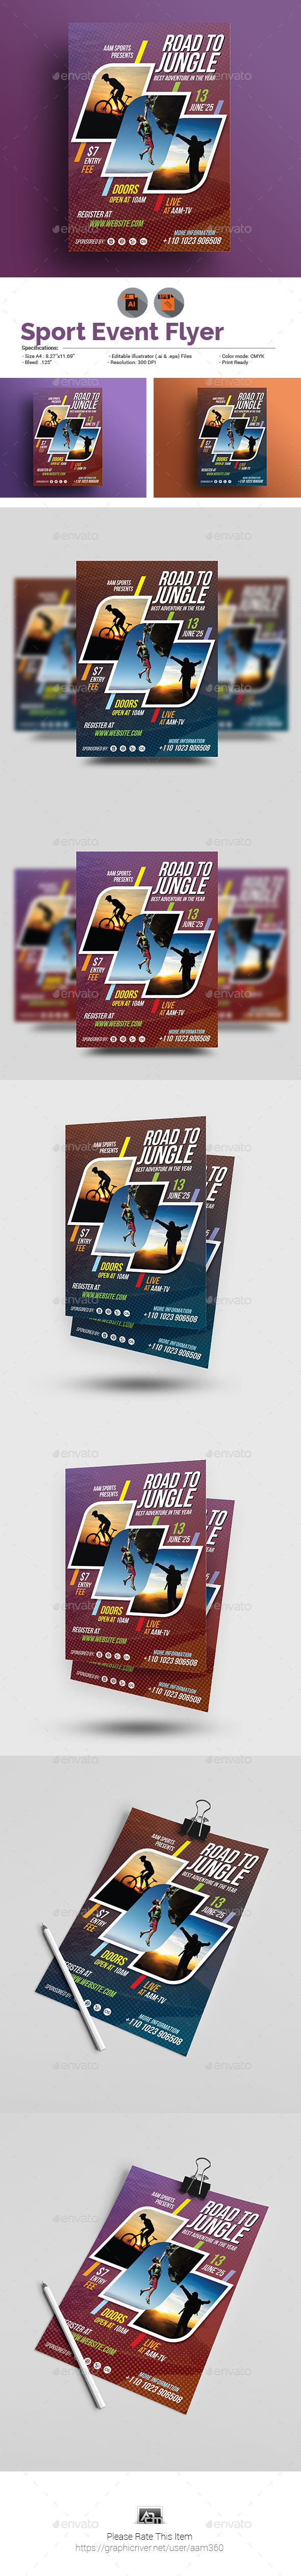 Sport Event Flyer - Sports Events